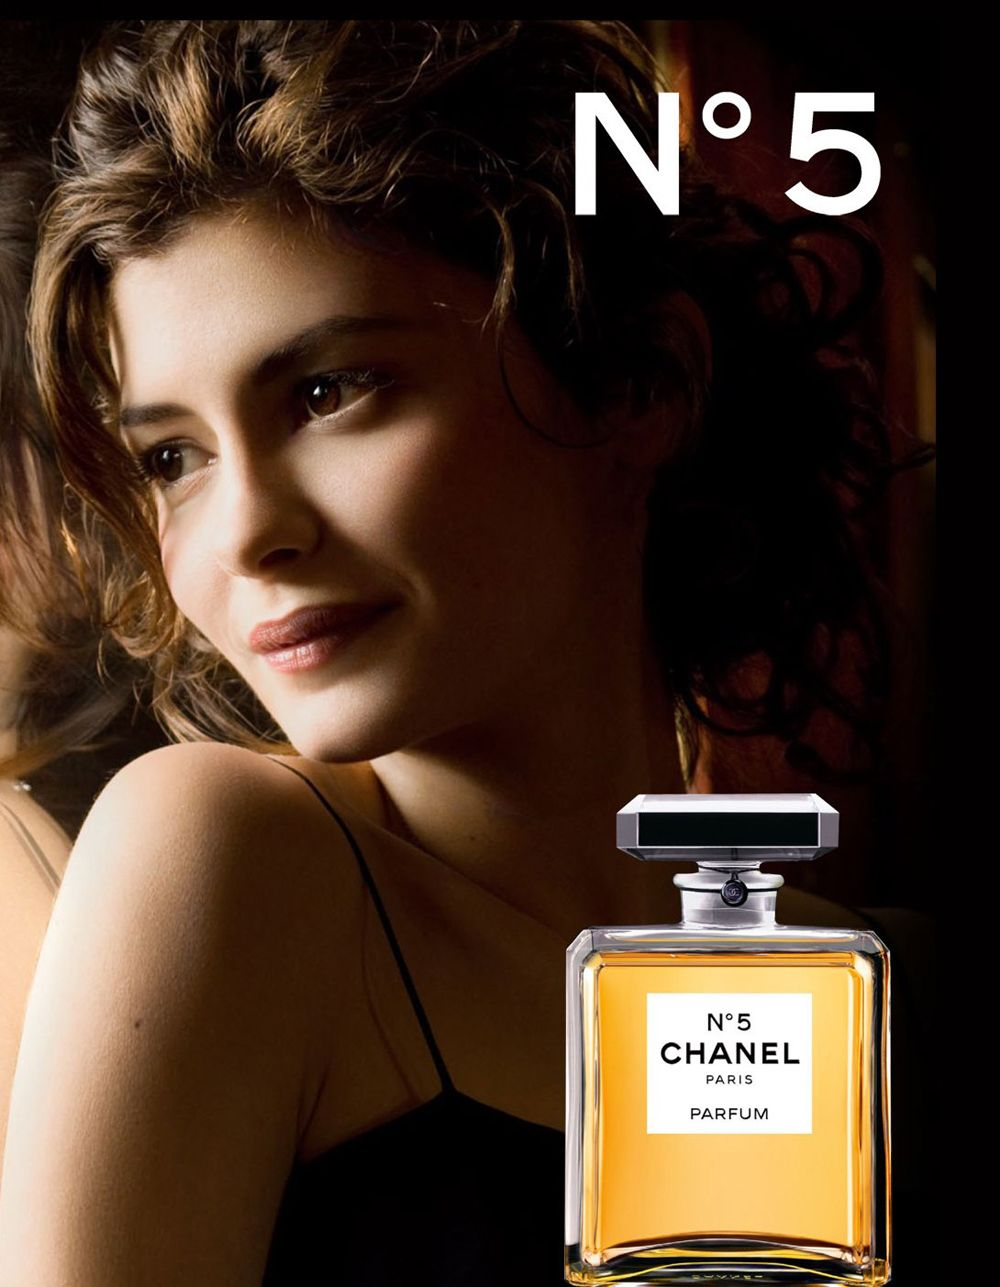 Chanel No5 Audrey Tautou Stills And Video More Than Just A Day